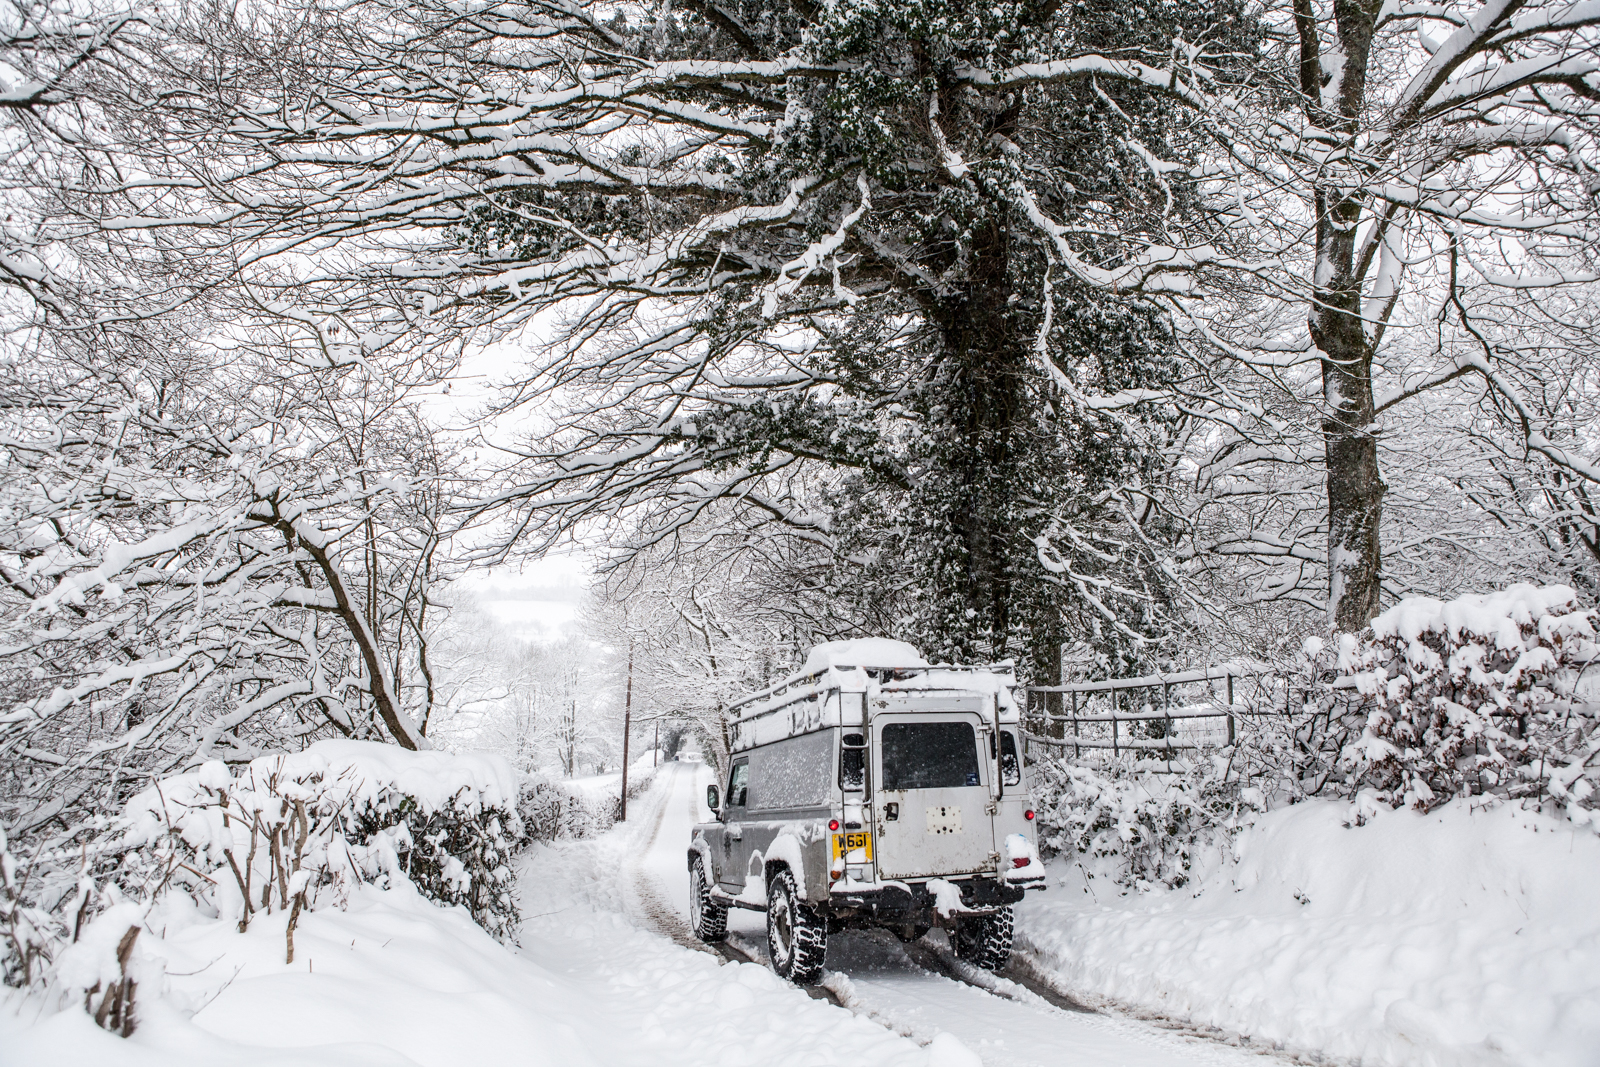 A Land Rover in heavy snow delivering wedding guests to a venue in Kent Wedding Photographer Matilda Delves's winter wedding planning guide